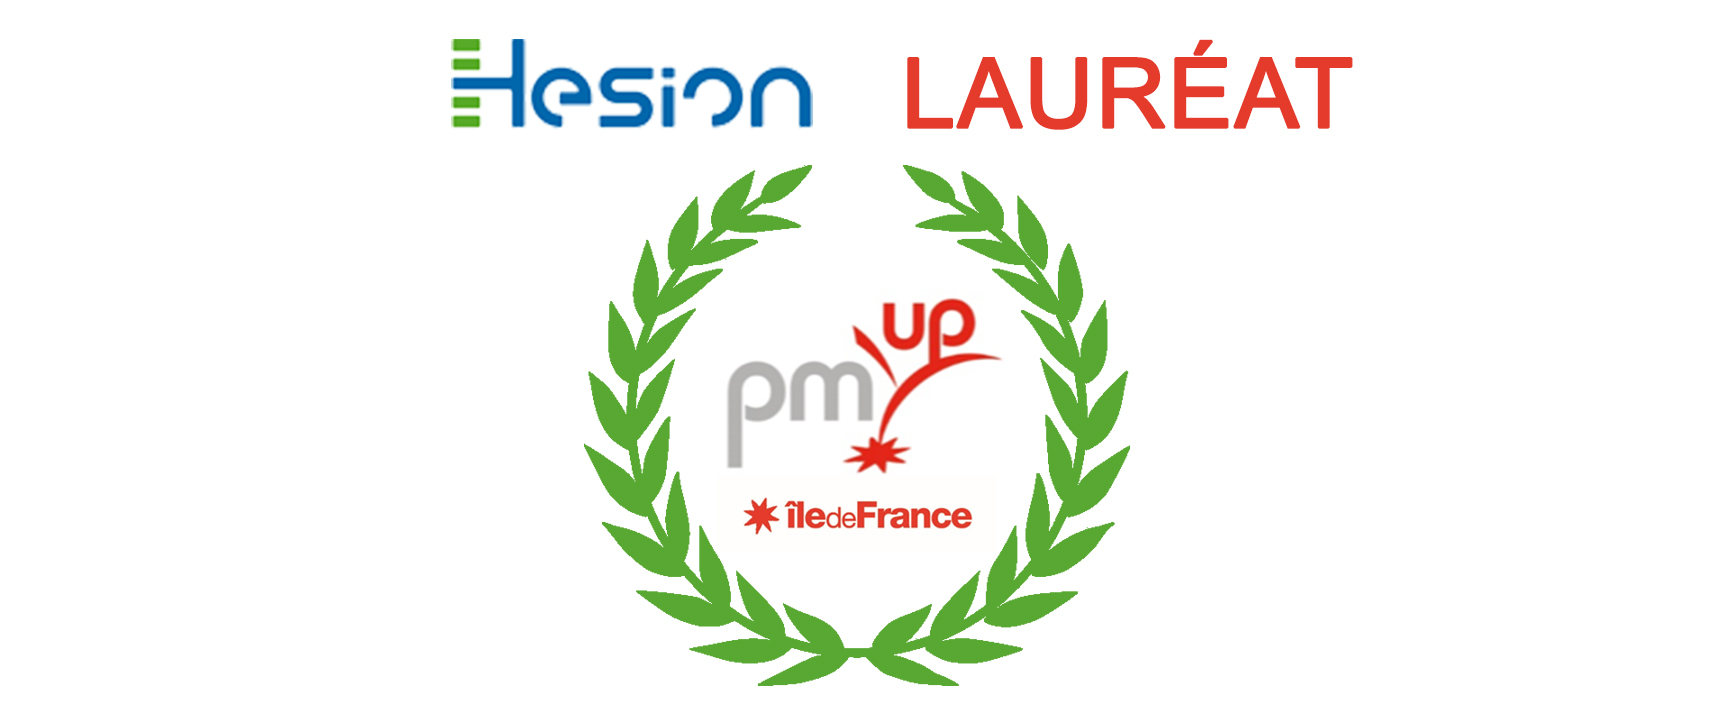 hesion-laureat-pmup